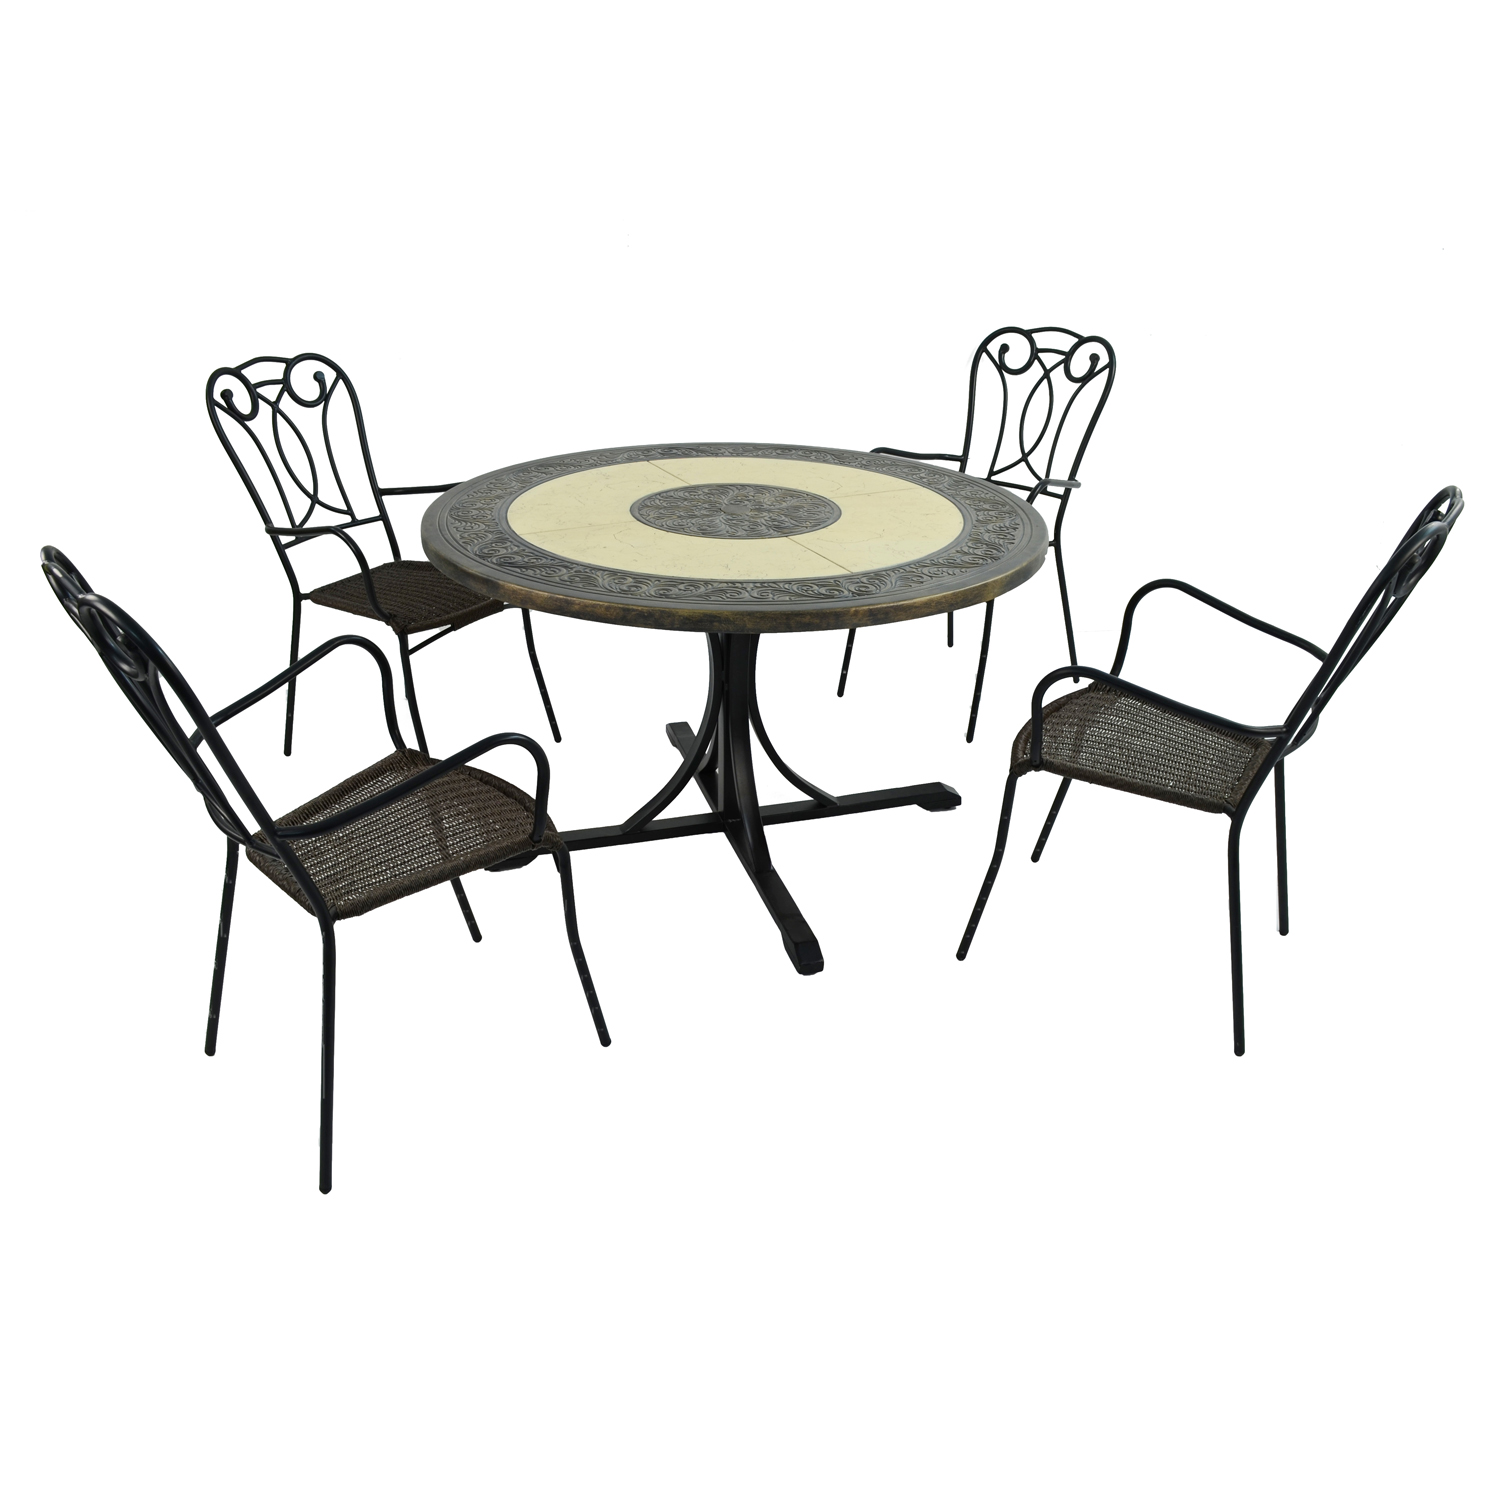 ST MALO DINING TABLE WITH 4 VERONA CHAIR SET